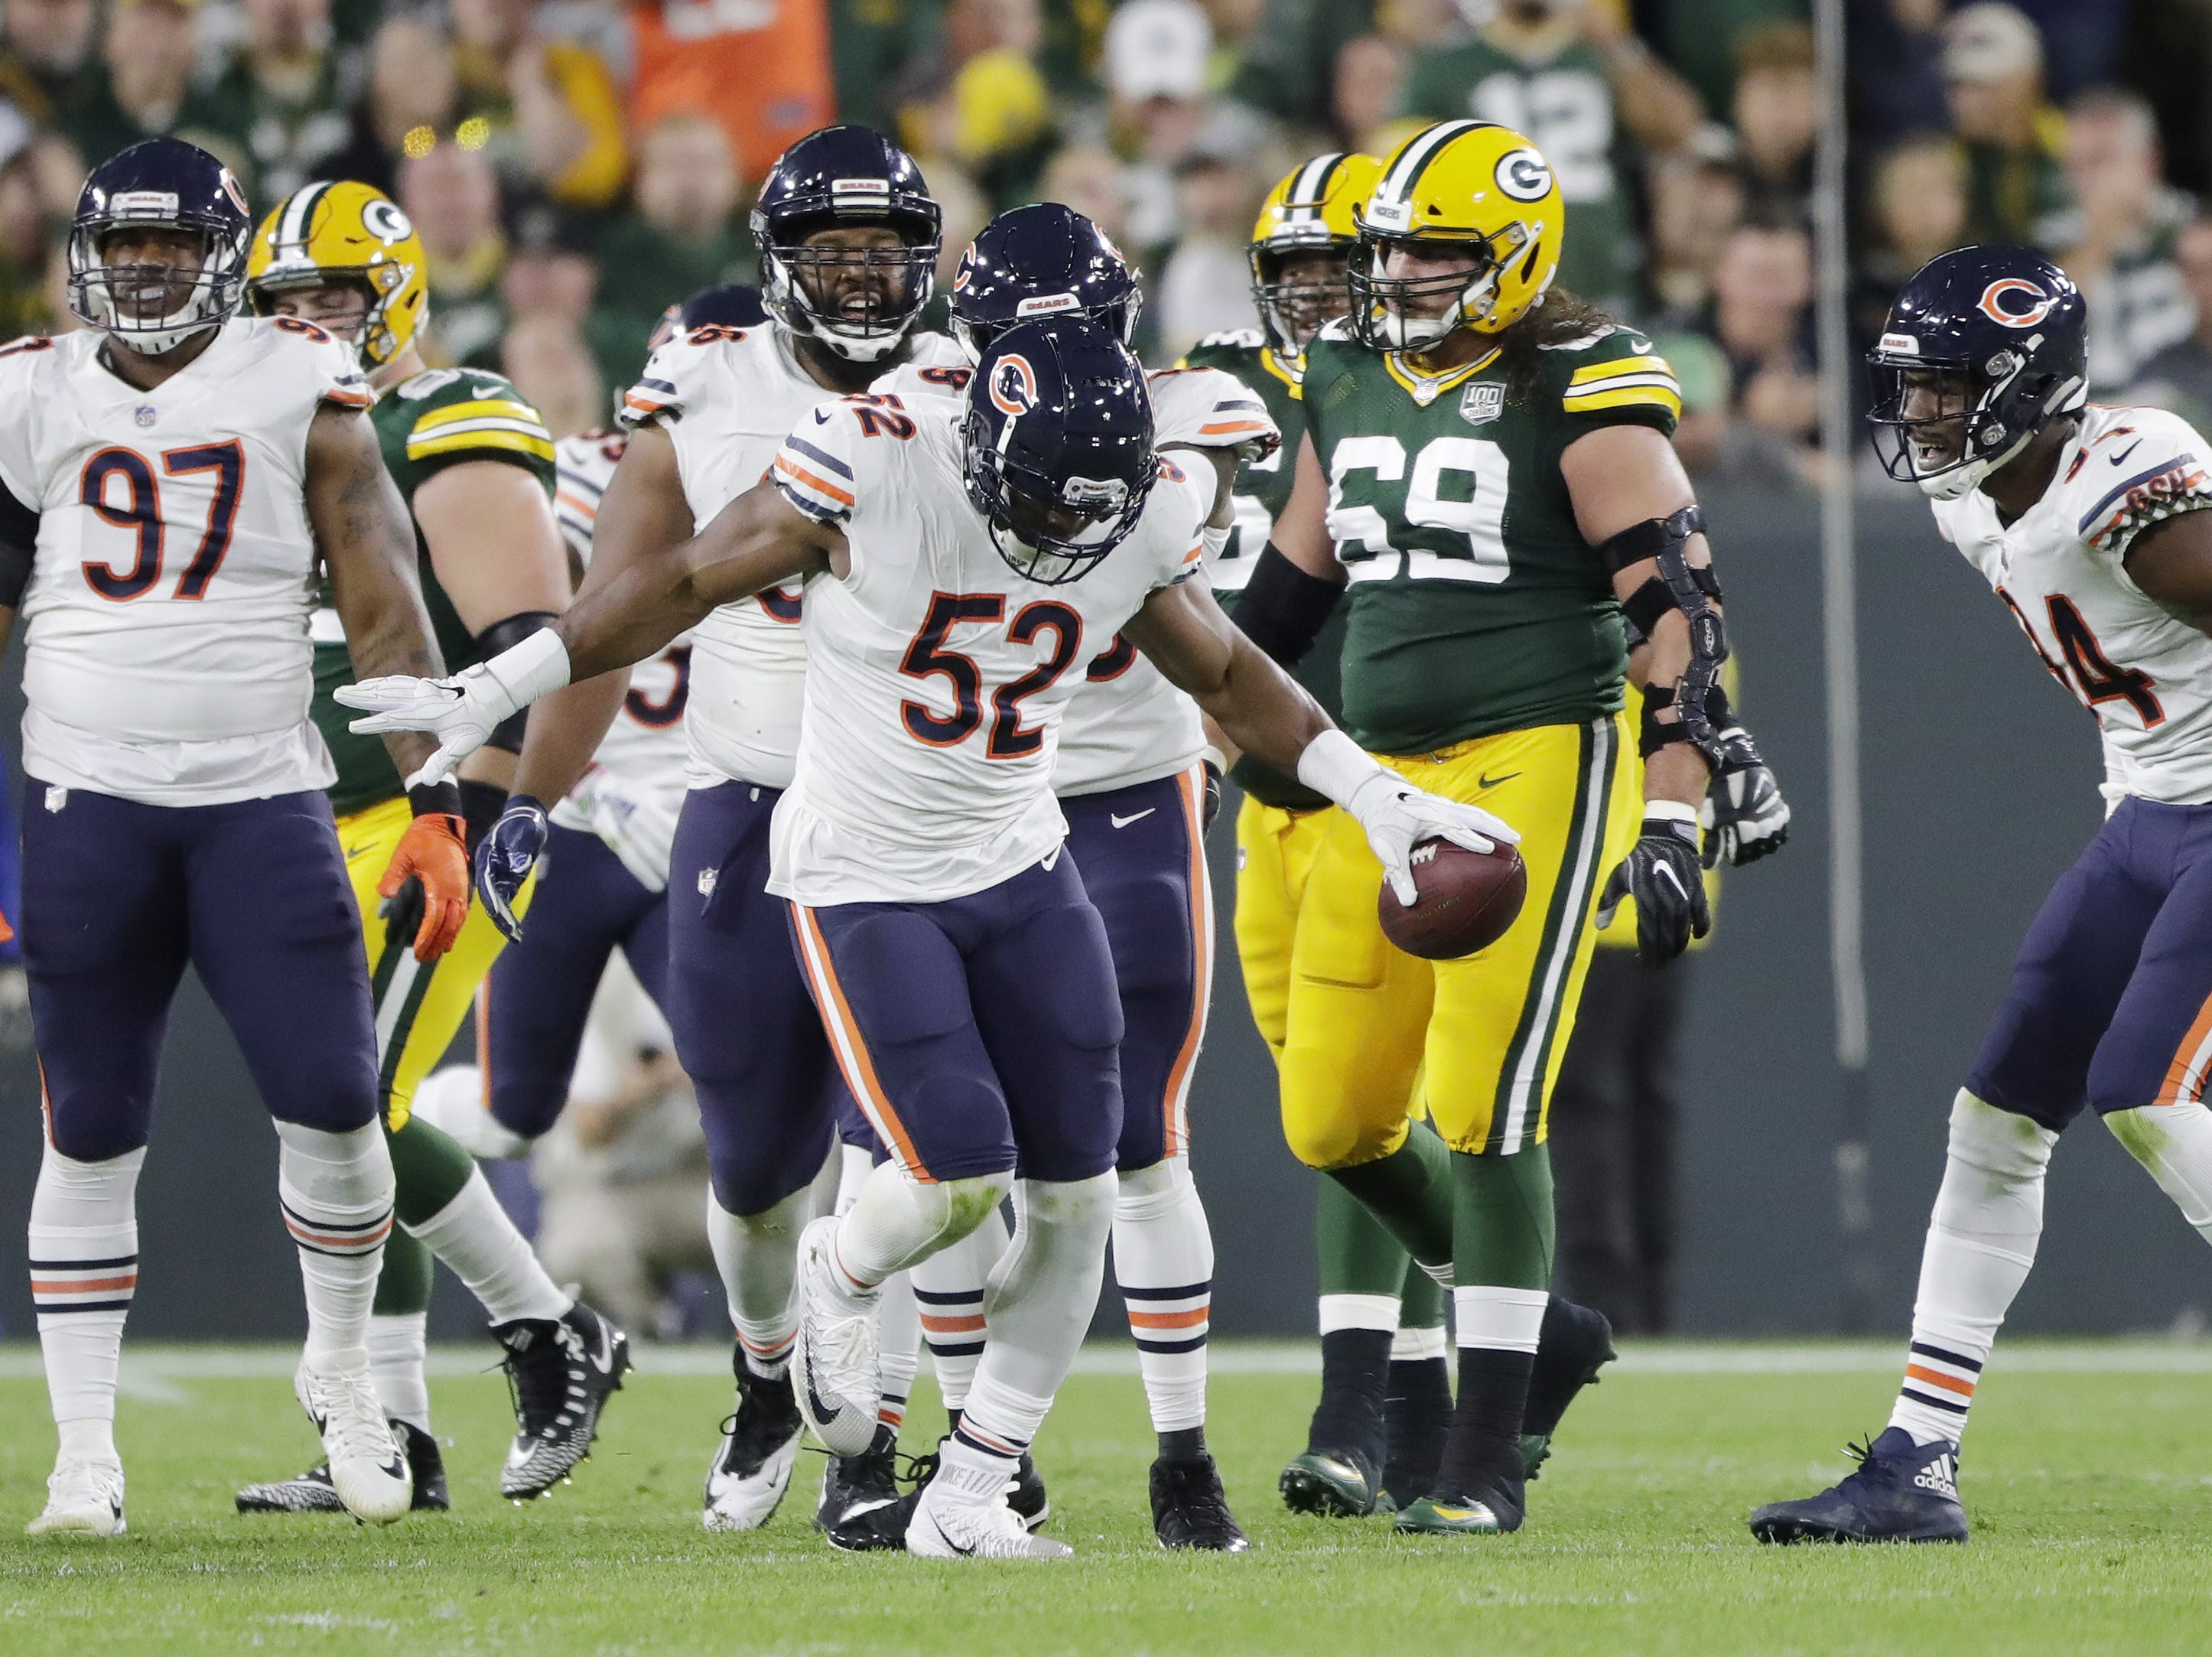 Chicago Bears linebacker Khalil Mack (52) reacts after recovering a fumble by Green Bay Packers quarterback DeShone Kizer (9) in the second quarter at Lambeau Field on Sunday, September 9, 2018 in Green Bay, Wis.